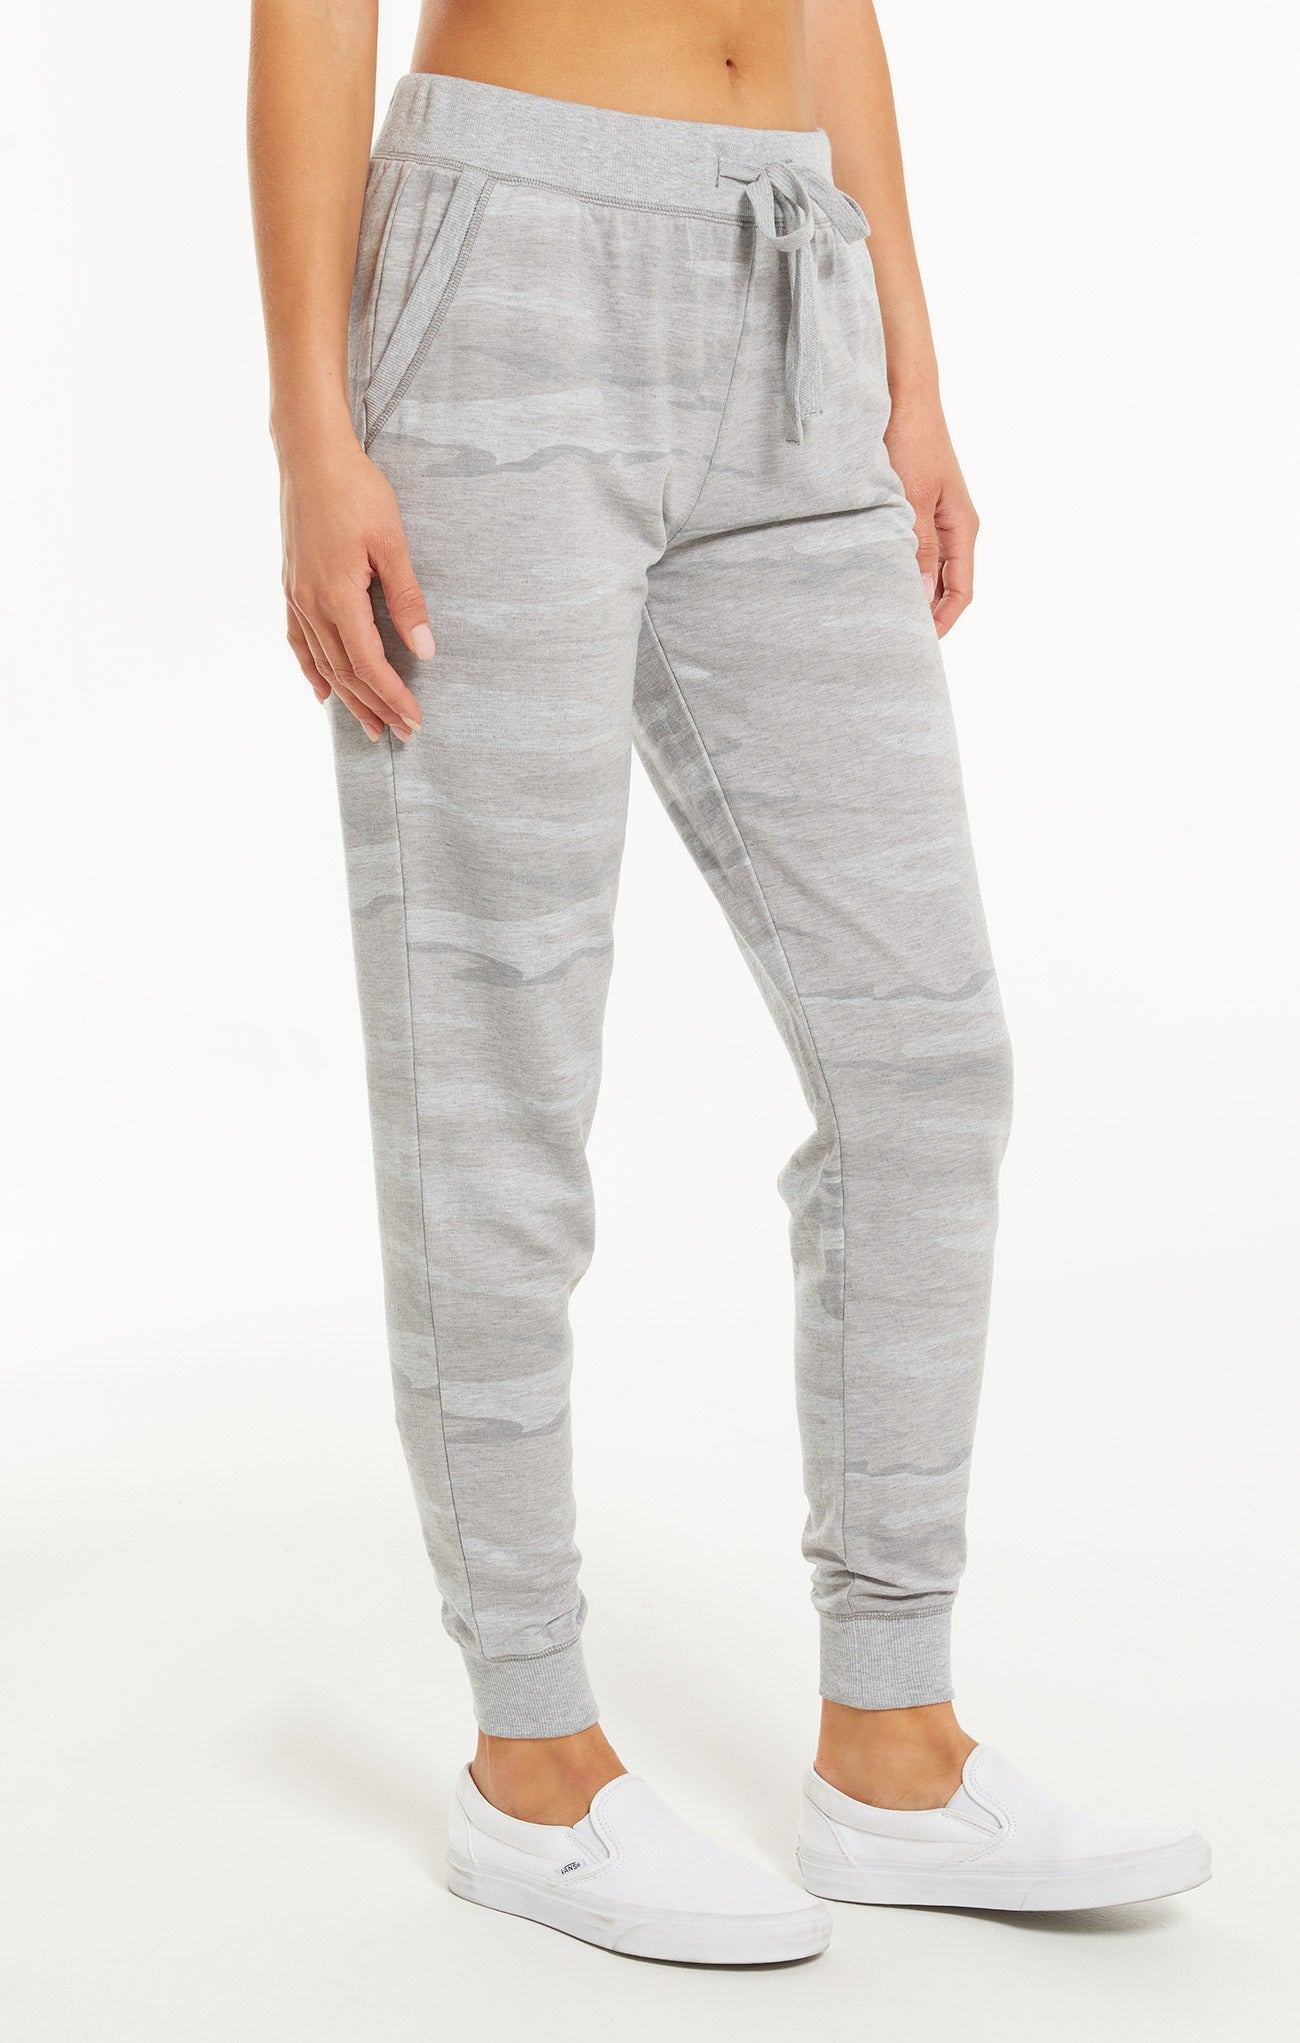 Pants Camo Jogger Pant Heather Grey Camo